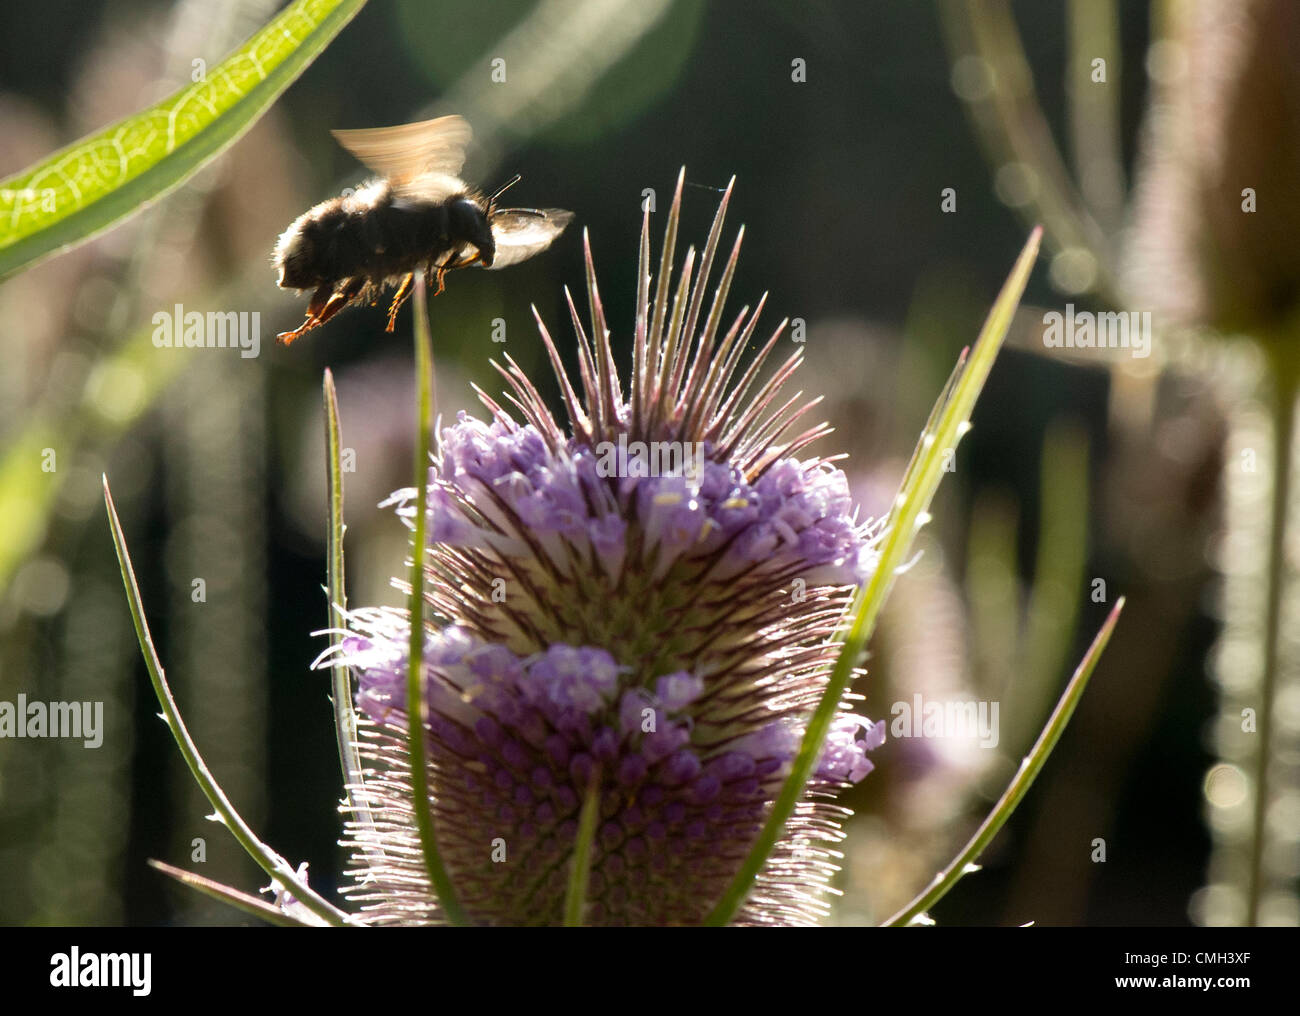 Aug. 9, 2012 - Roseburg, Oregon, U.S - A native bee forages on a wildflower growing in a wetland near a roadway - Stock Image